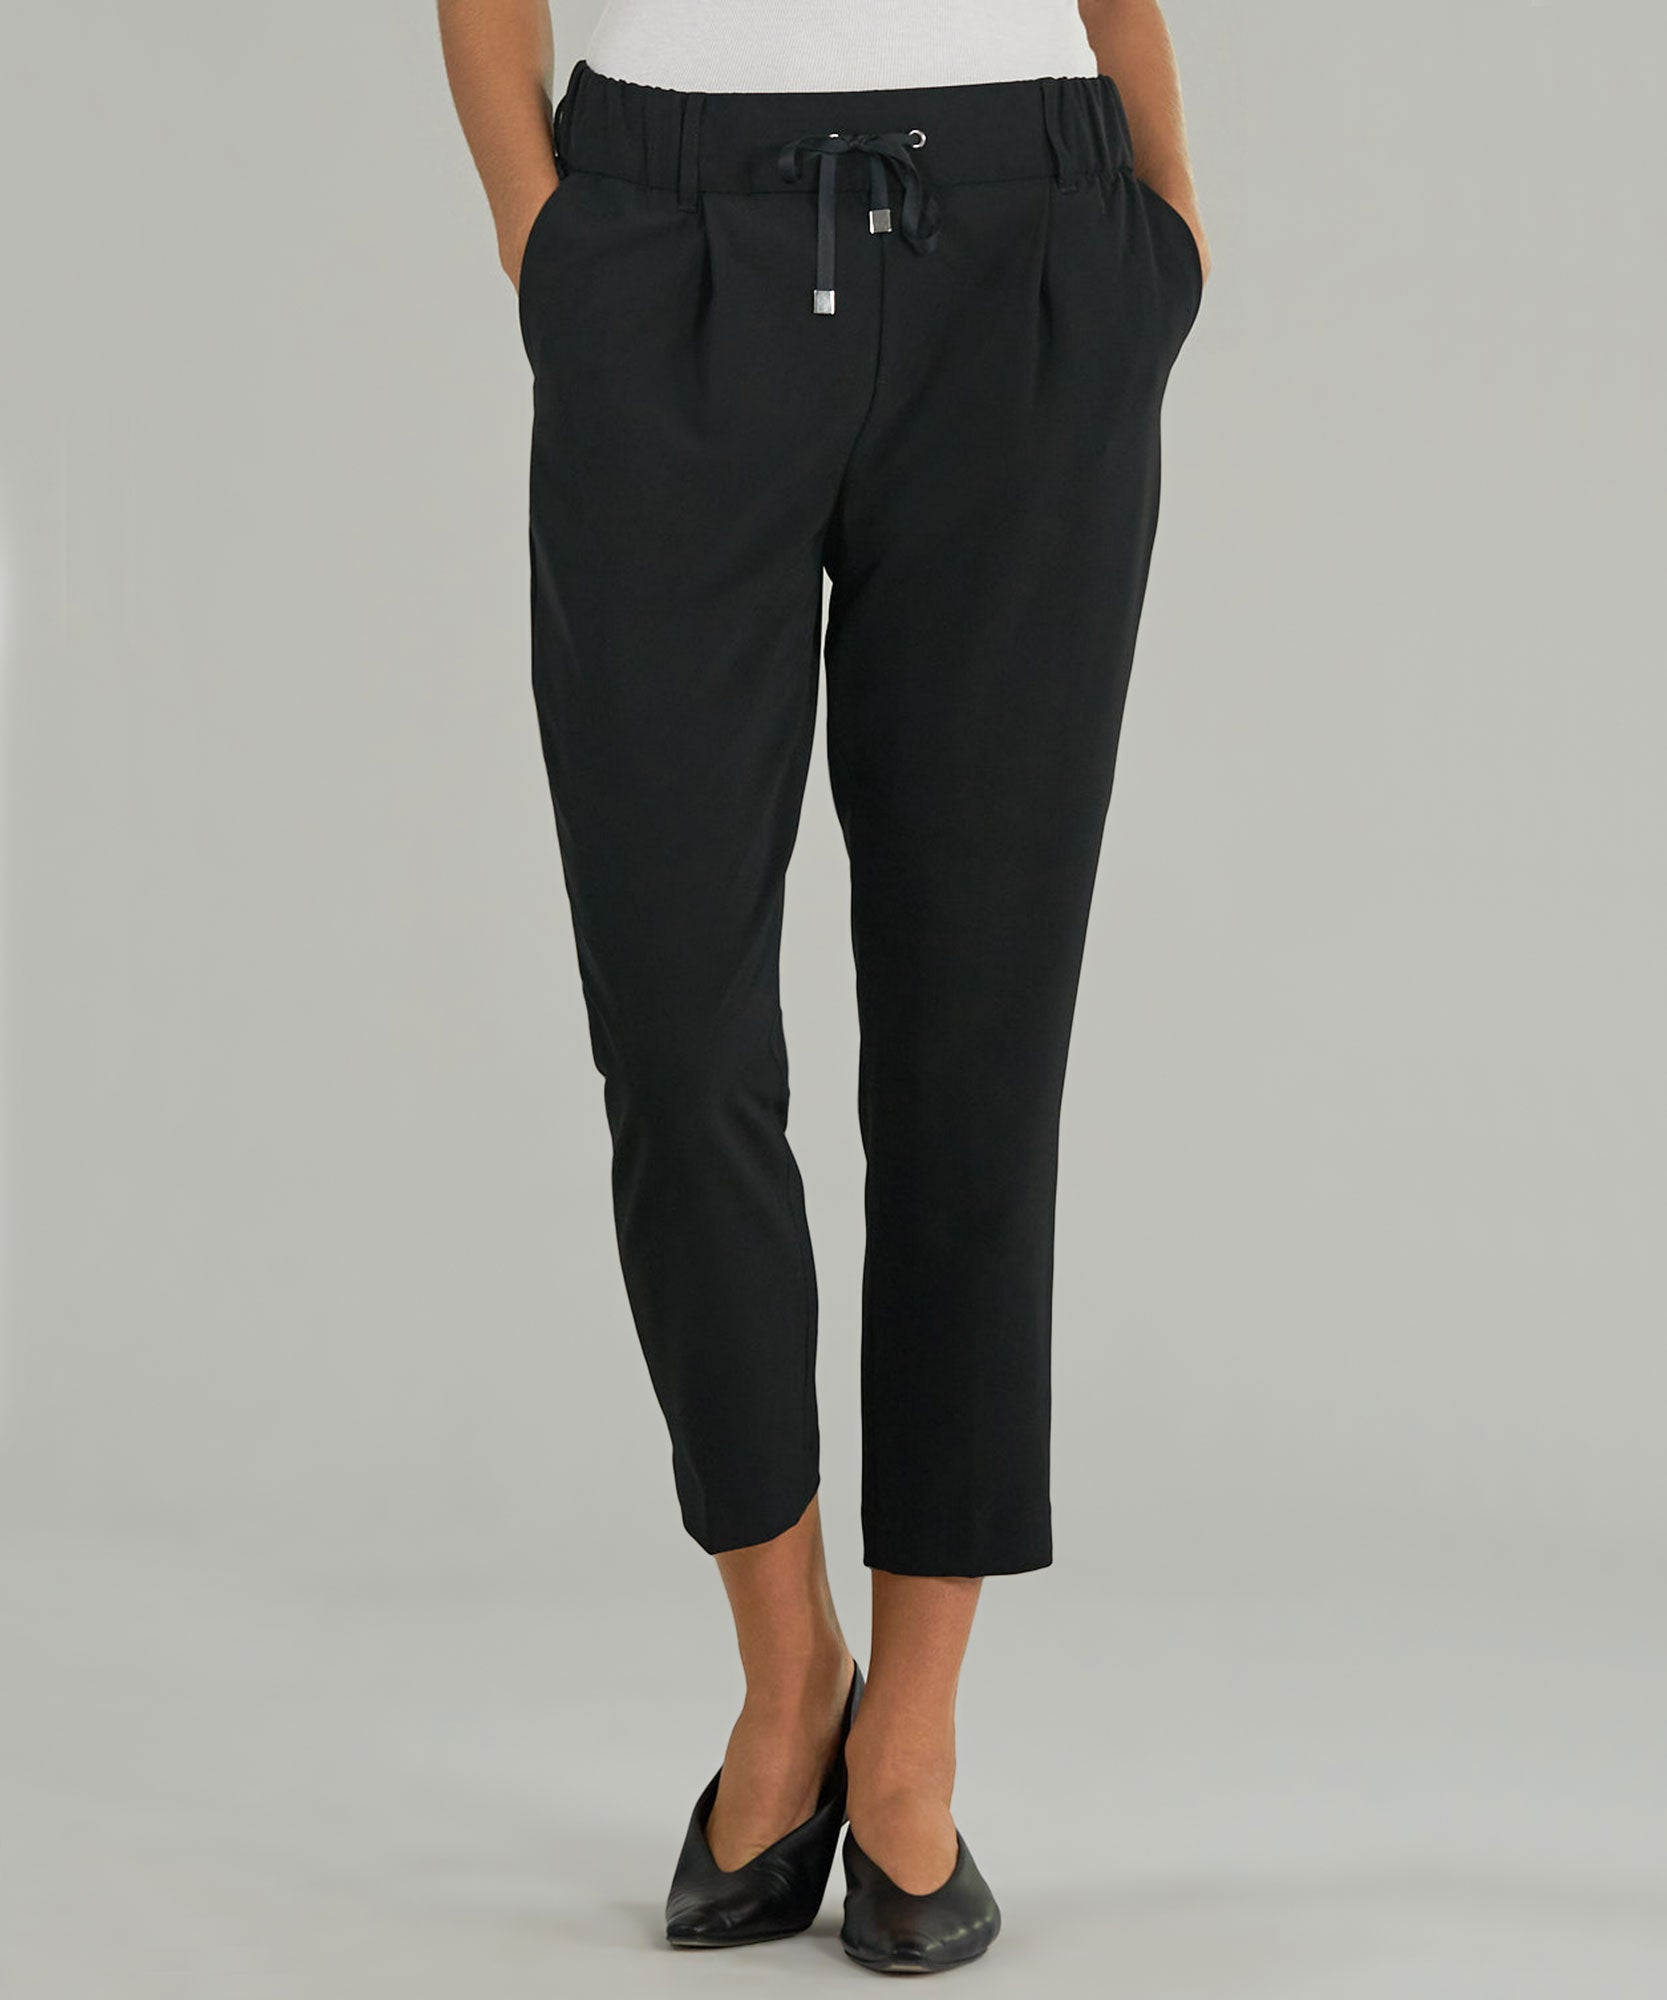 Black Micro Twill Pull-On Pants - Women's Luxury Pants by ATM Anthony Thomas Melillo